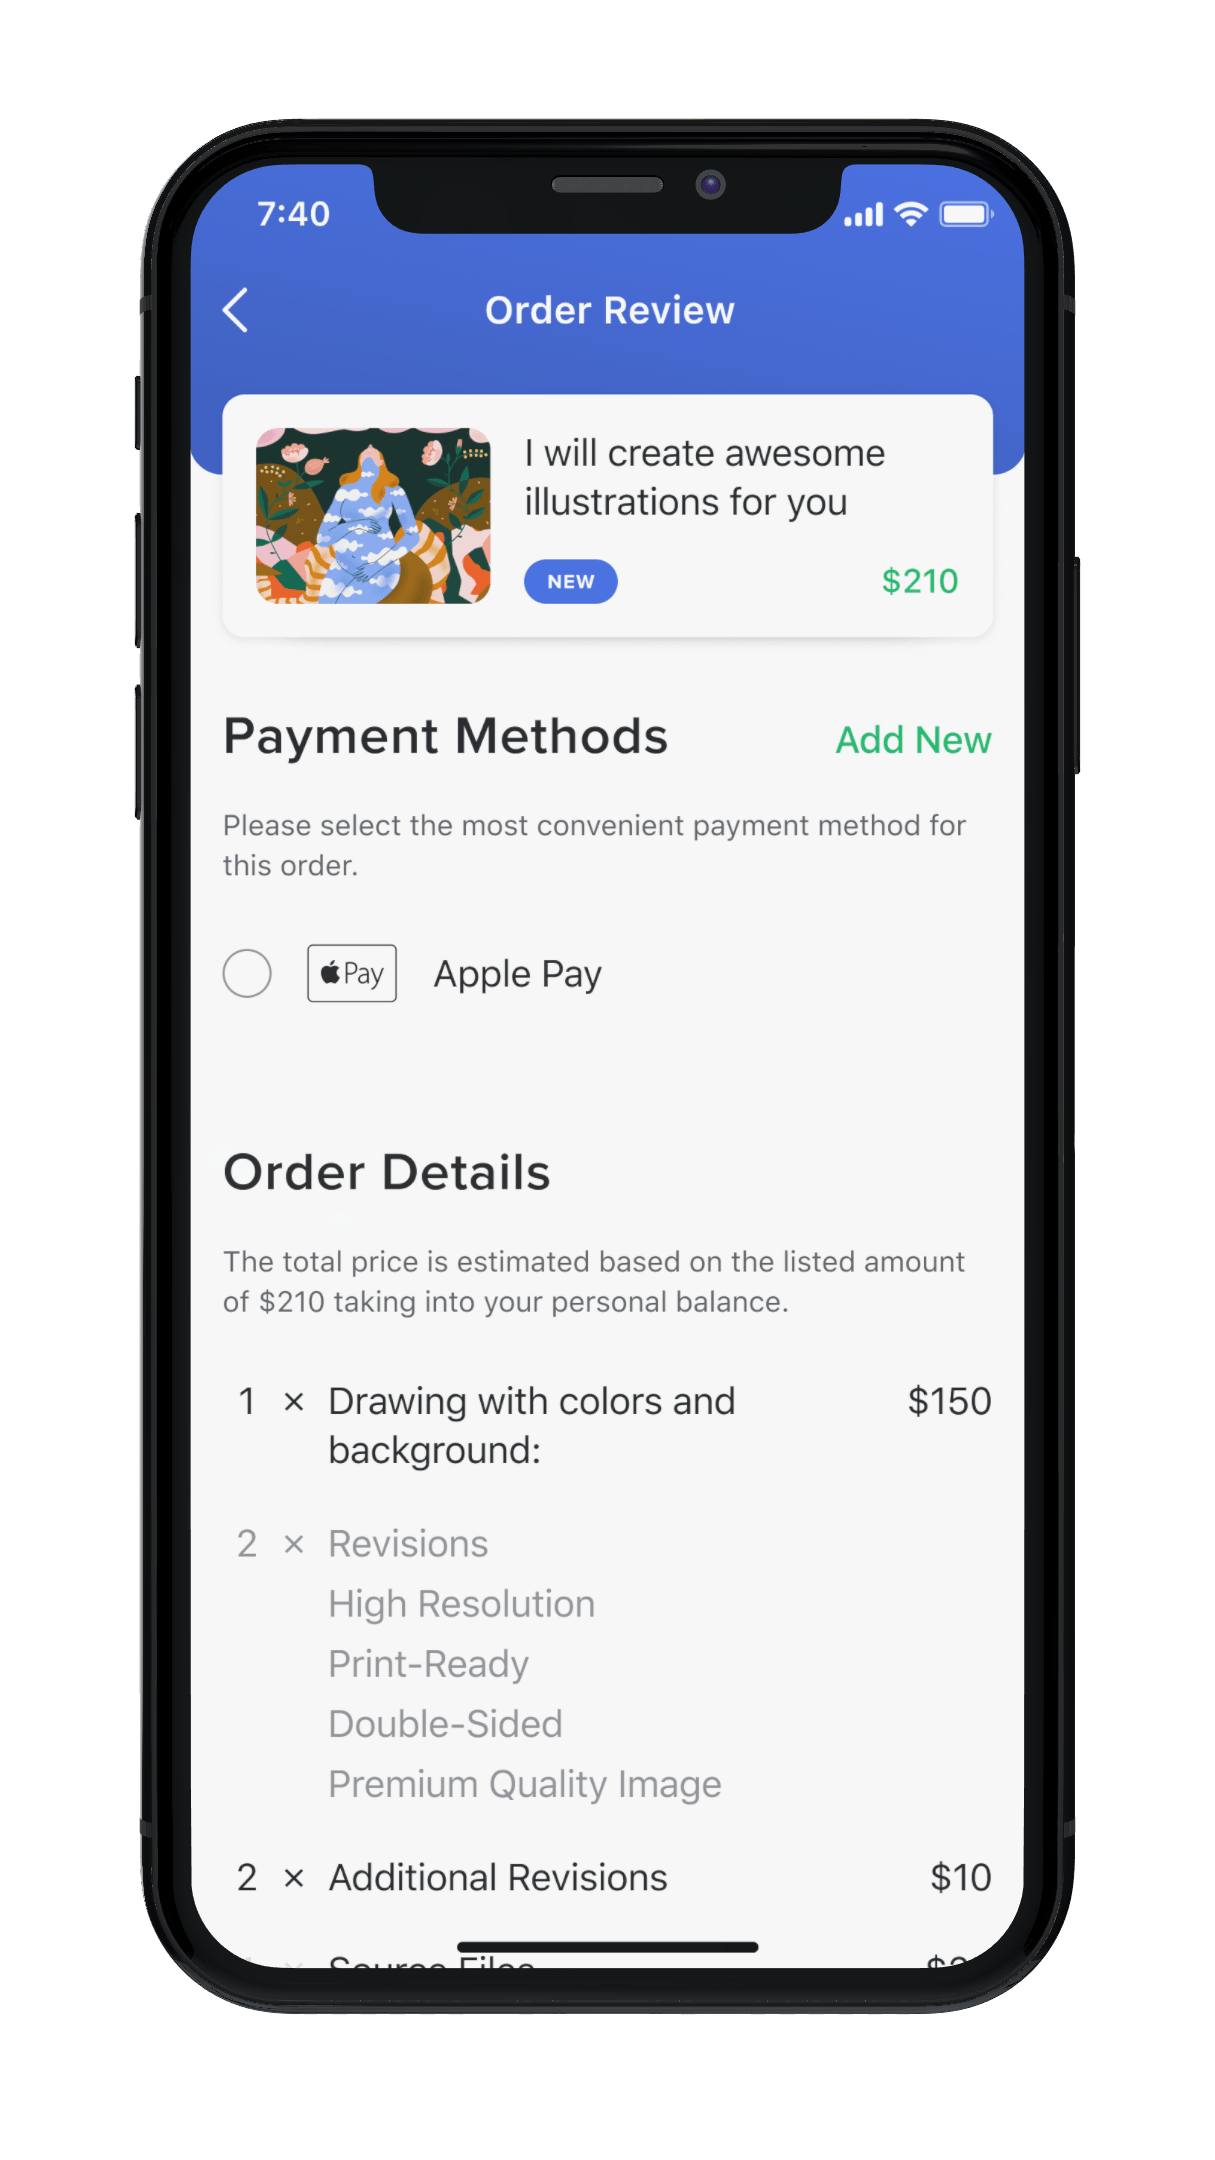 orderreview_01